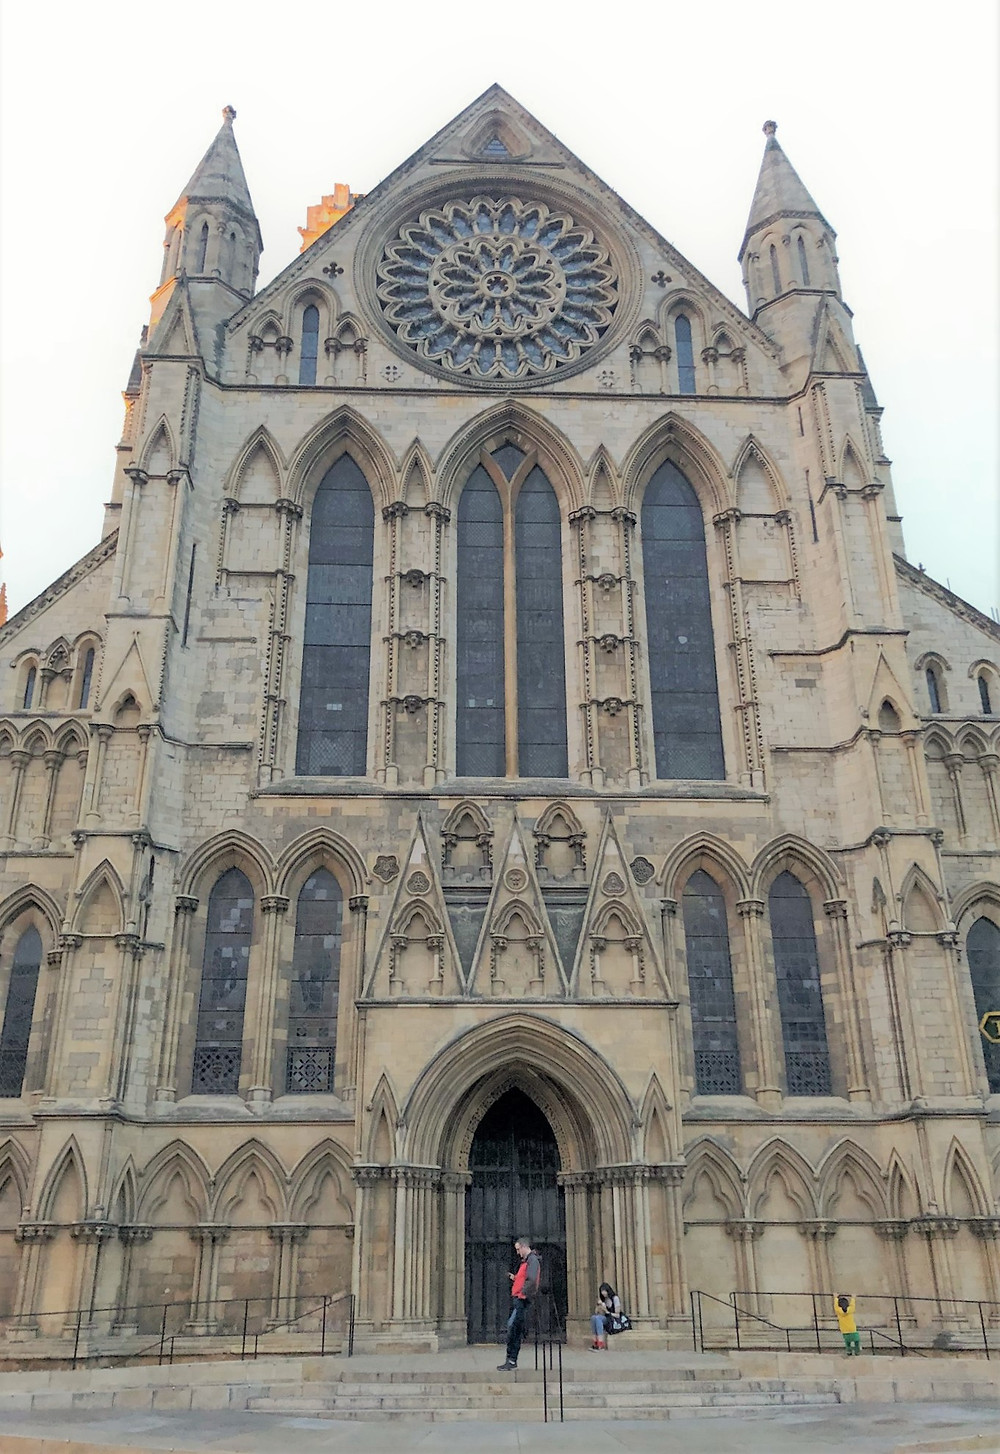 The South Transept entrance and Rose Window tracery of York Minster